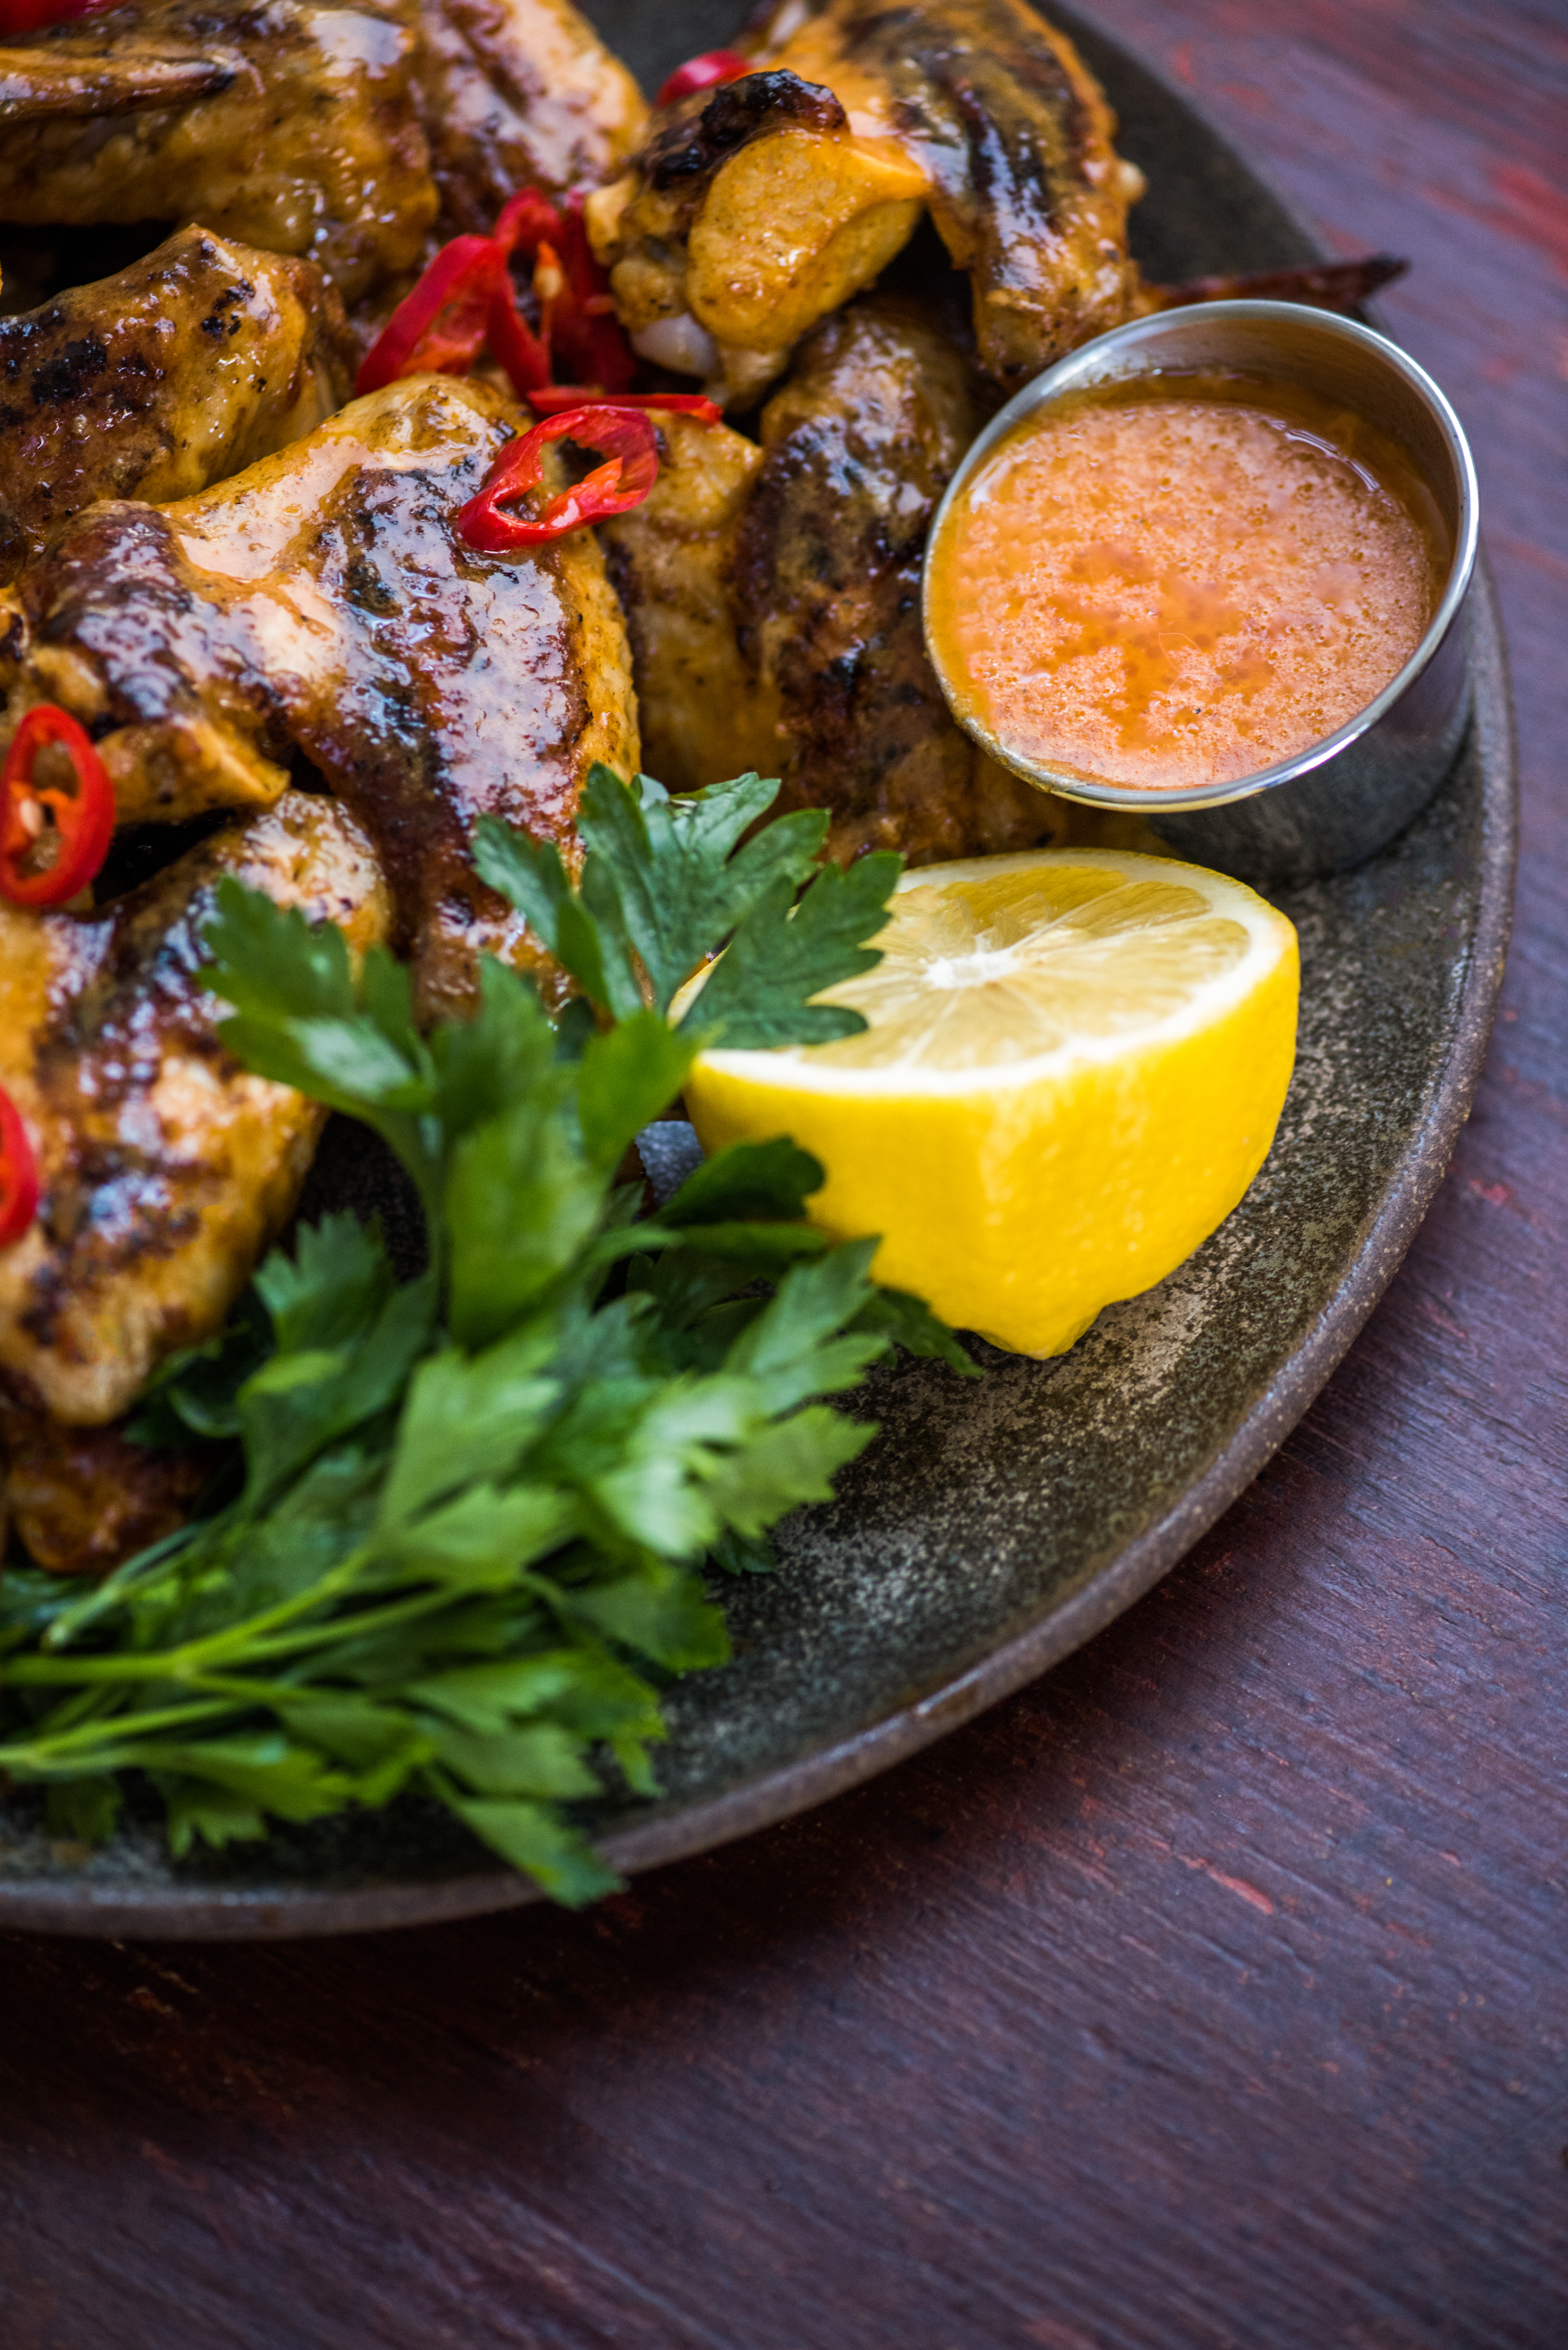 Grilled piri piri chicken wings dennis the prescott it was like a five week long cultural and food exchange traveling around southern forumfinder Choice Image